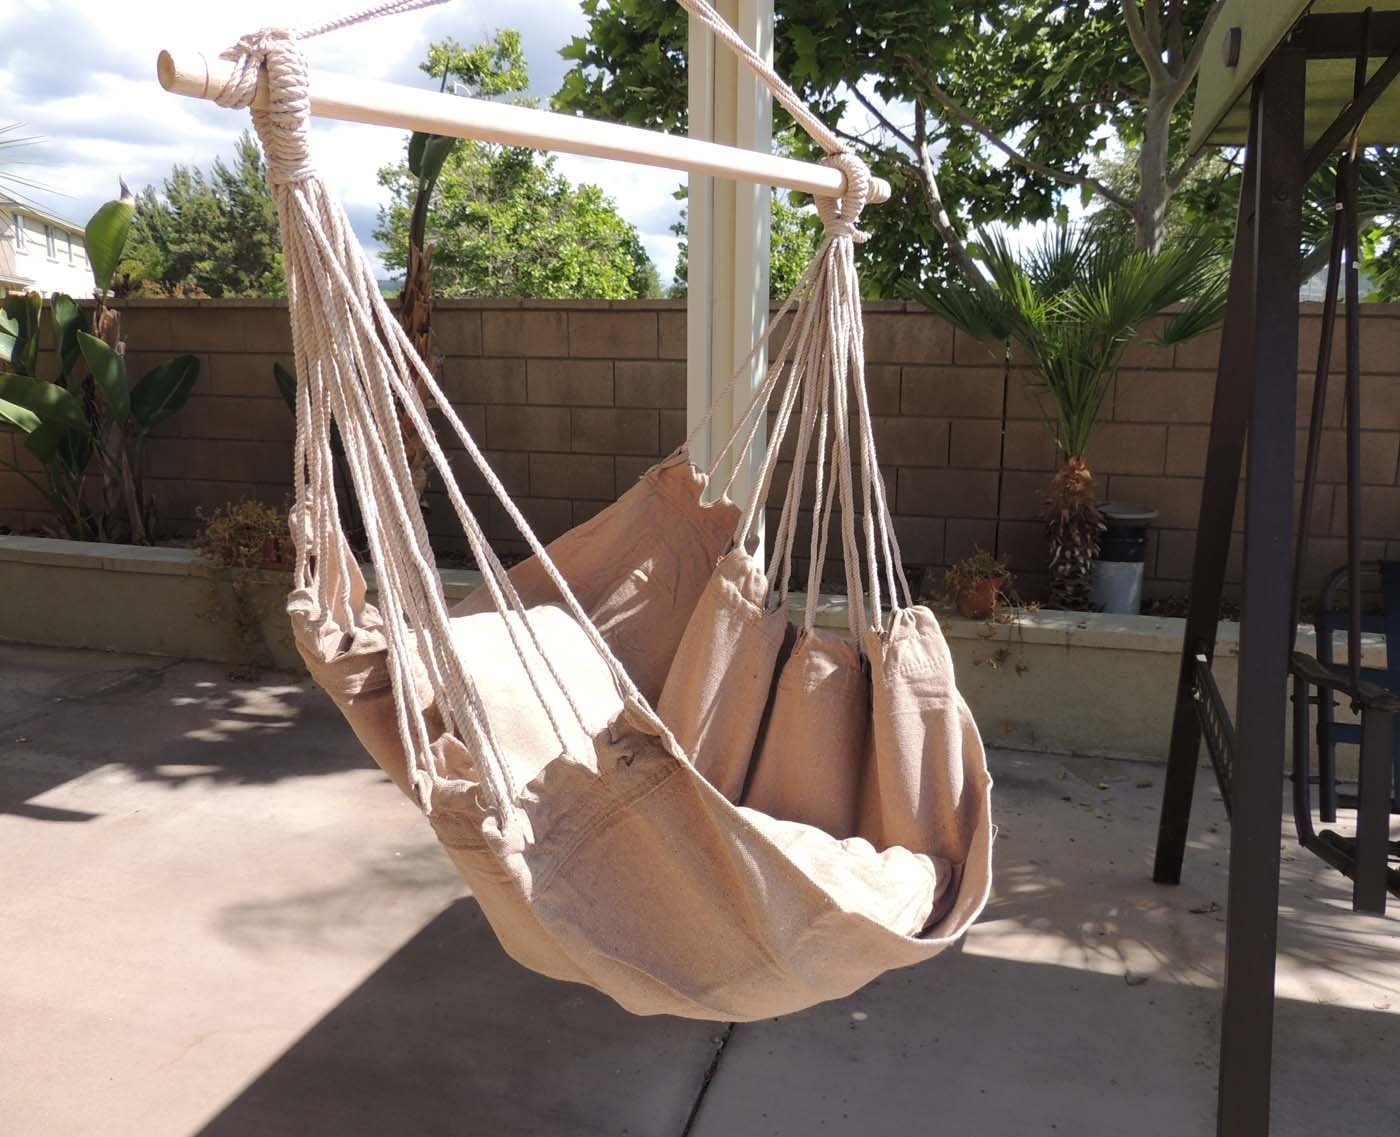 Amazon.com: Hammock Chair Hanging Rope Chair Porch Swing Outdoor Chairs  Lounge Camp Seat At Patio Lawn Garden Backyard Tan: Garden U0026 Outdoor